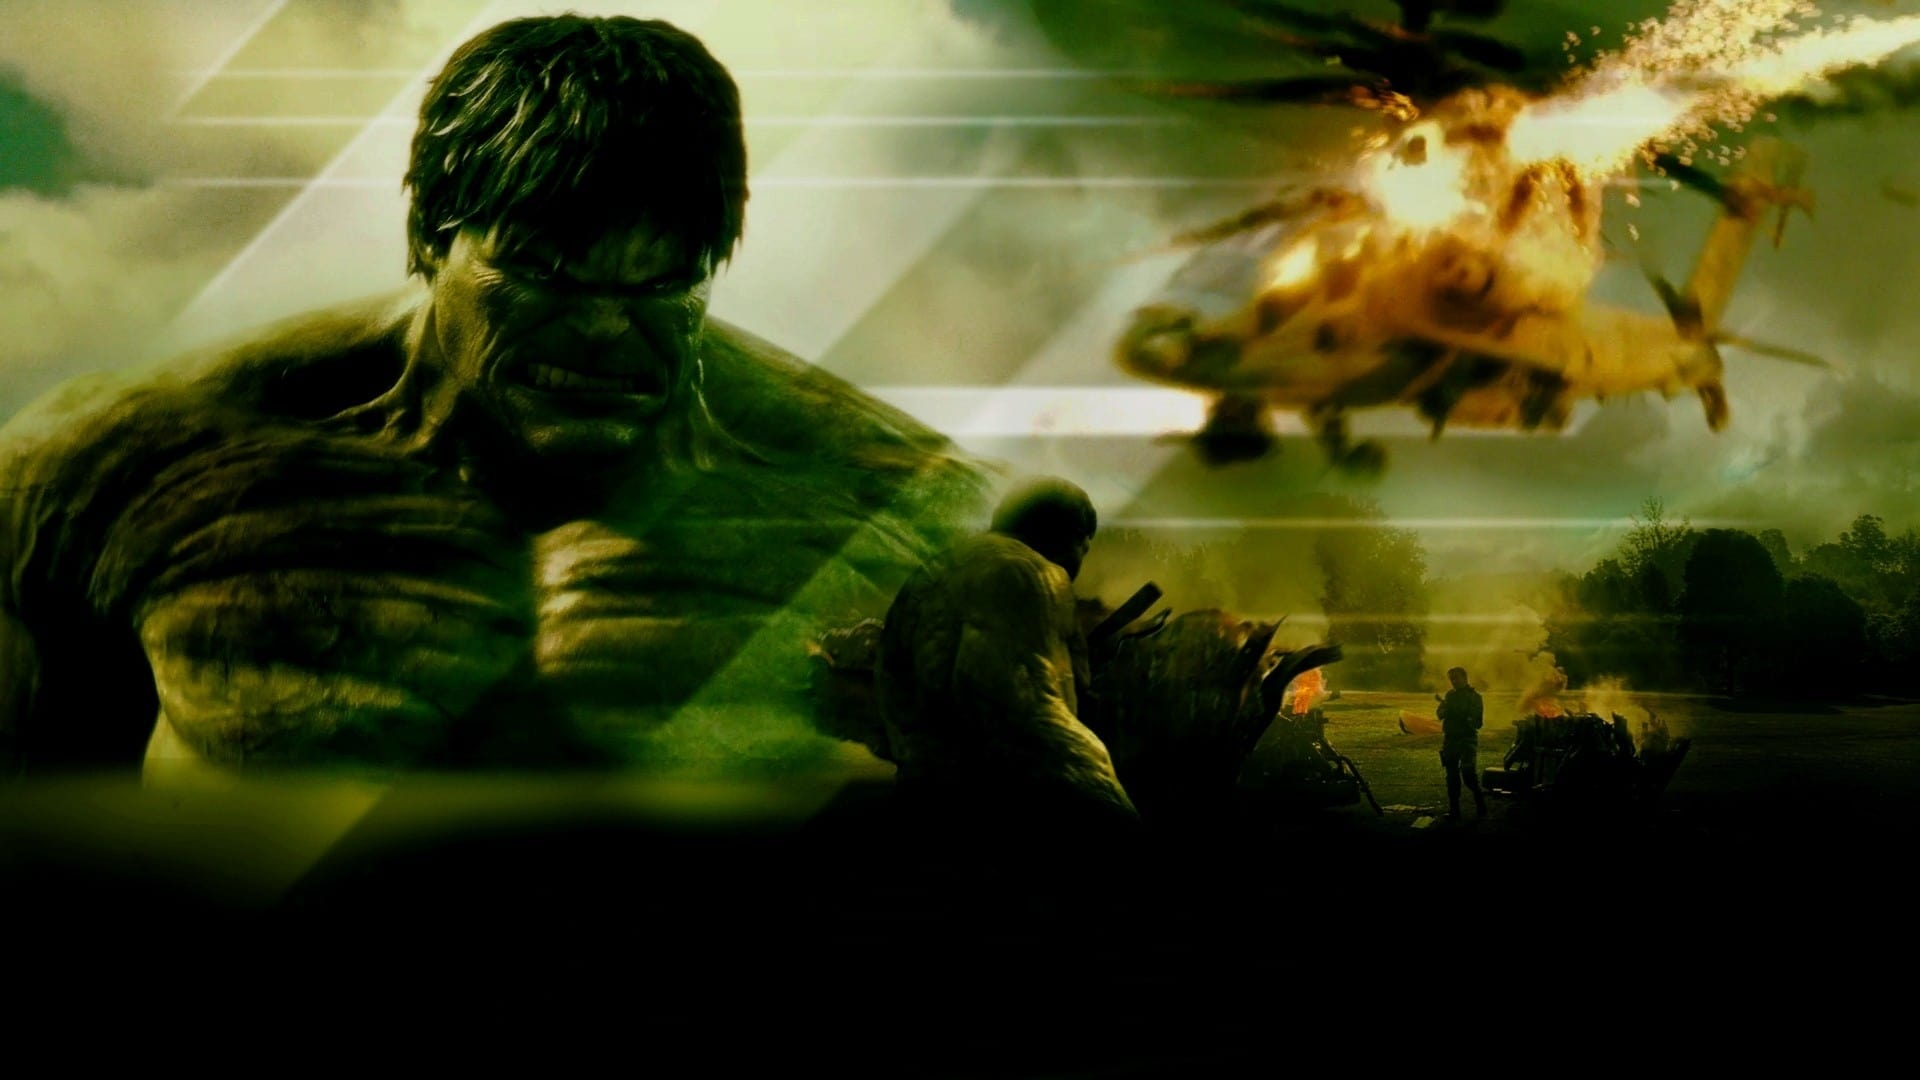 The Incredible Hulk Trailer